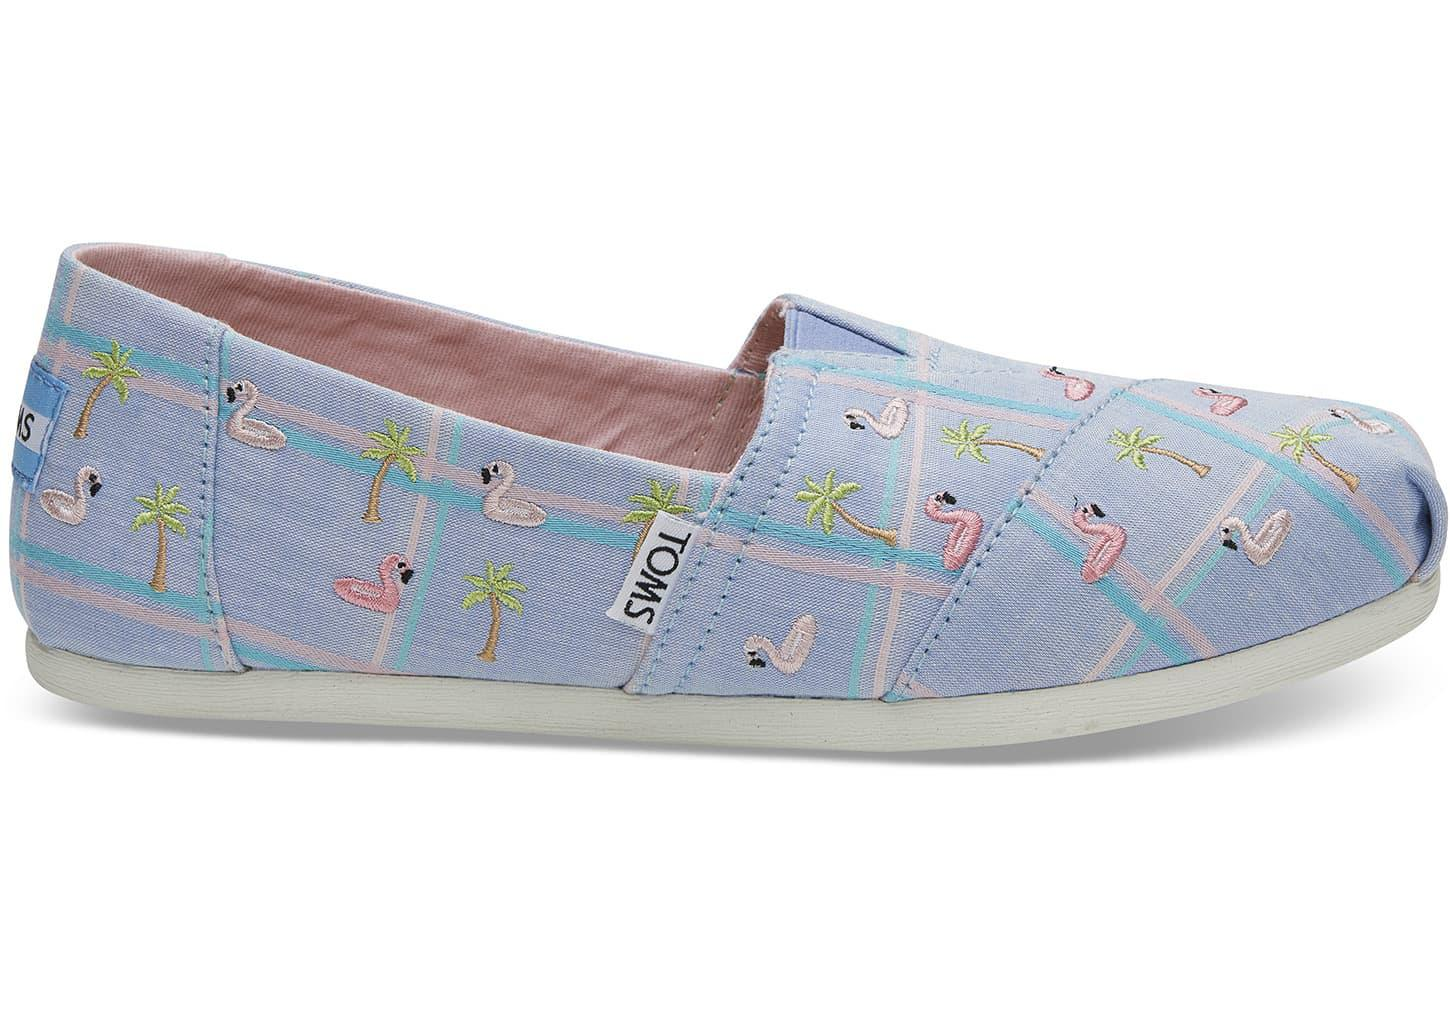 2cbf8a4d679 Lyst - TOMS Blue Madras Embroidered Flamingos Women s Classics in Blue